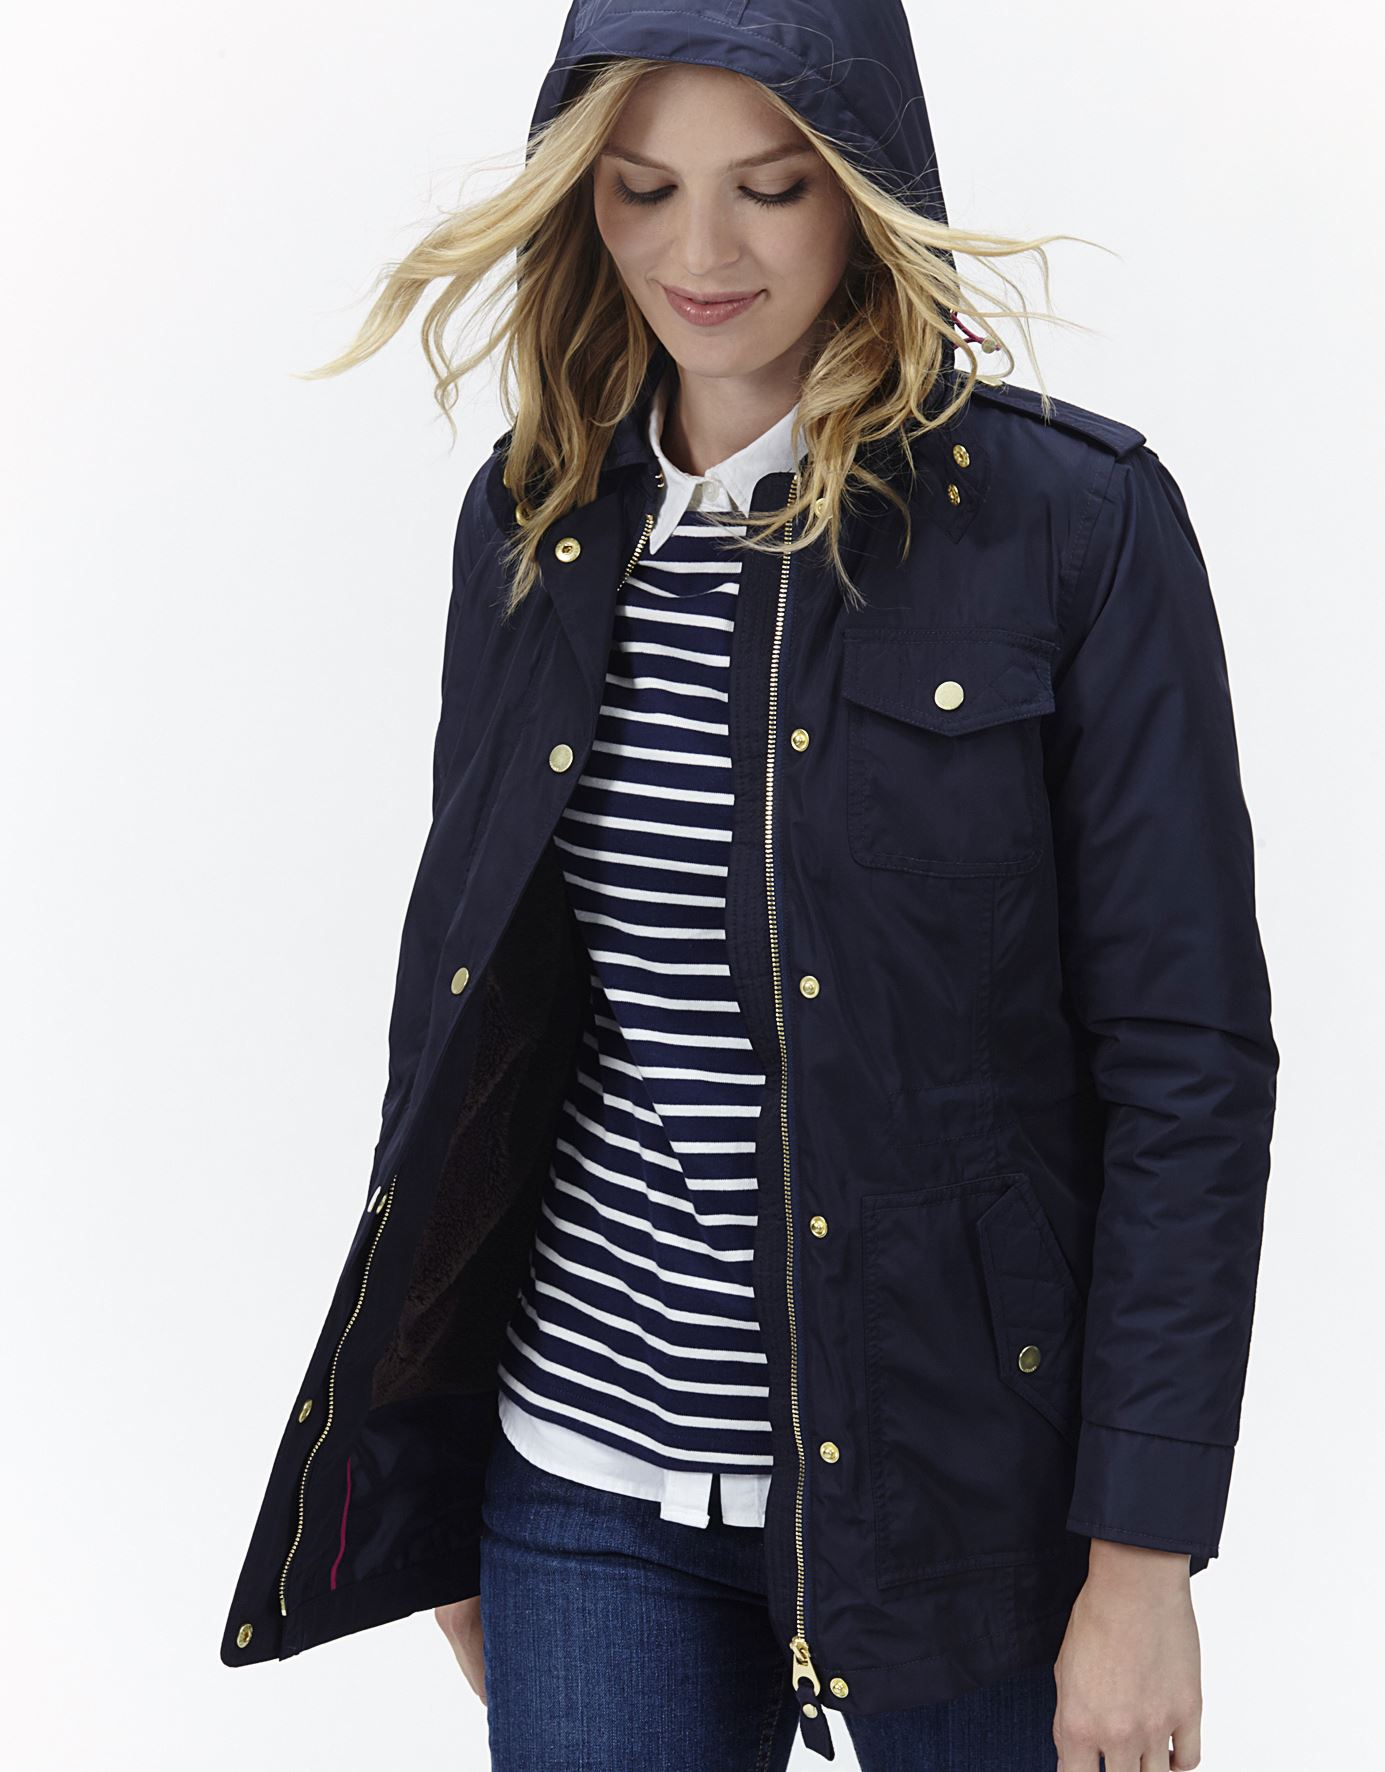 joules winchester womens 3 in 1 jacket aw 2015 ebay. Black Bedroom Furniture Sets. Home Design Ideas